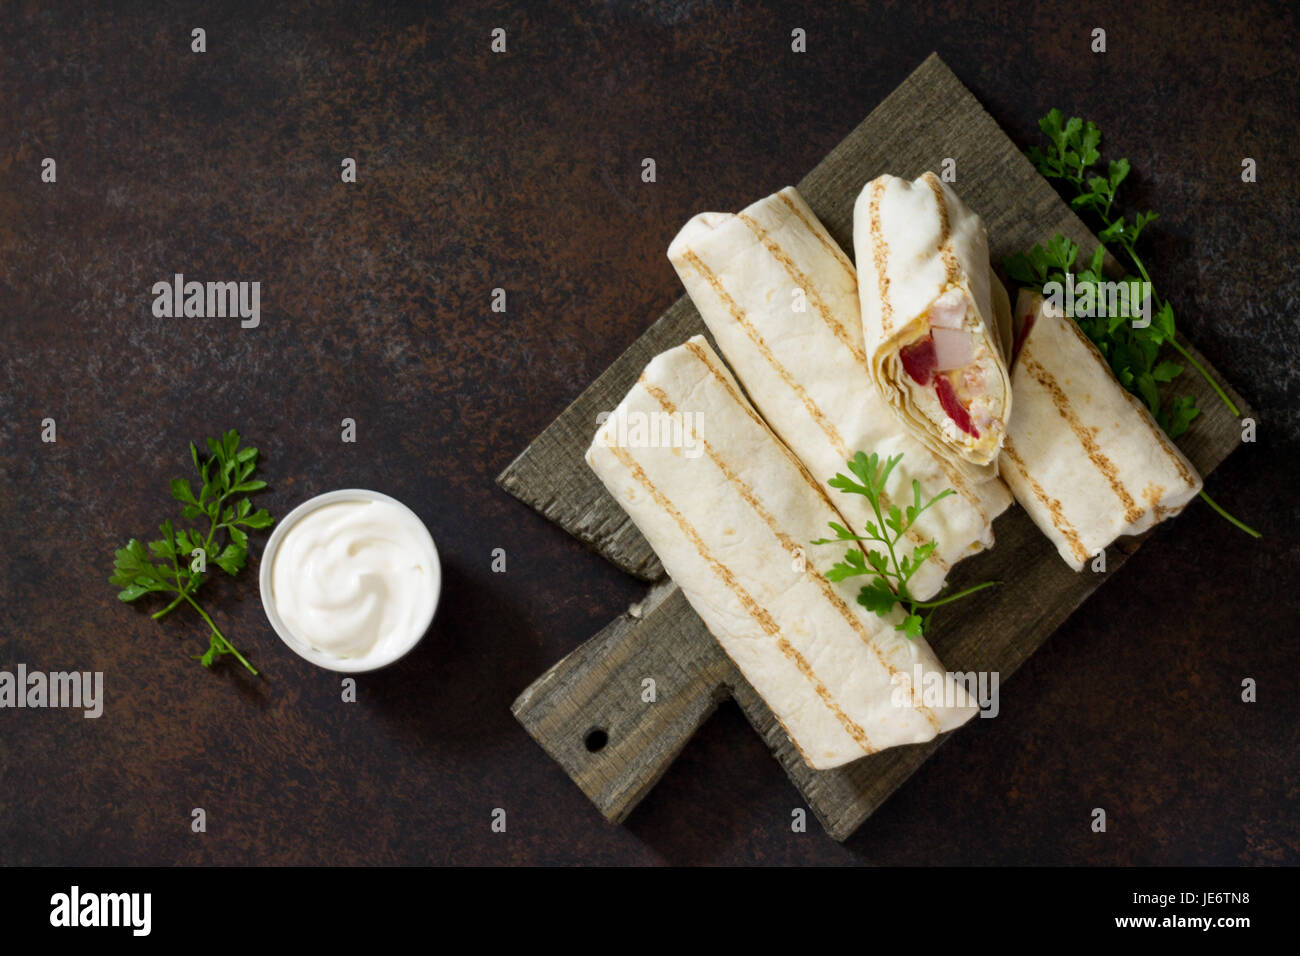 Shawarma pita bread with grilled chicken, fresh vegetables and cream sauce on a background of brown stone. Top view - Stock Image